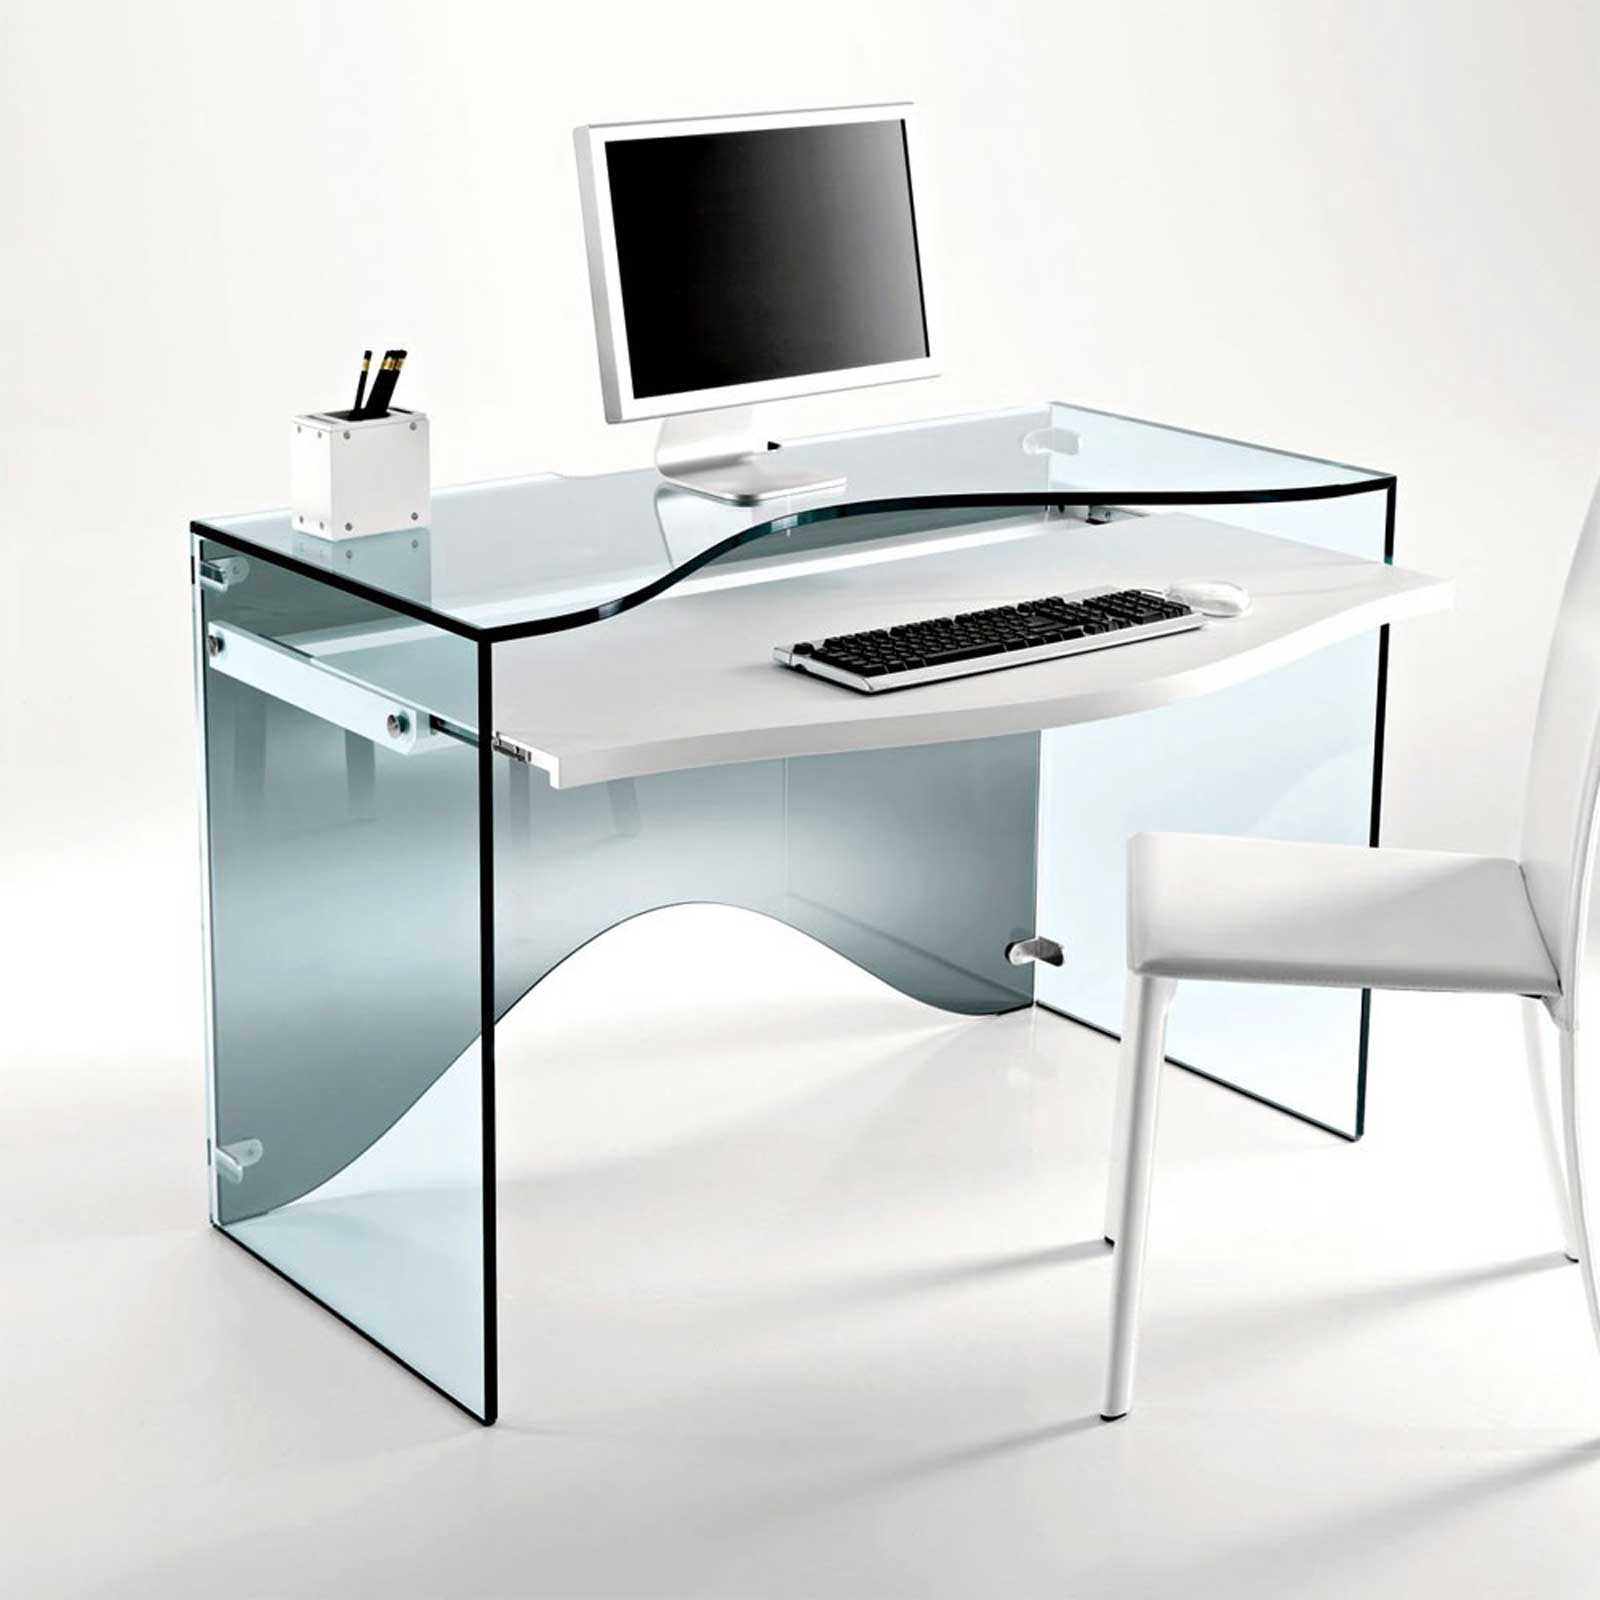 Strata Transparent Glass Office Desk